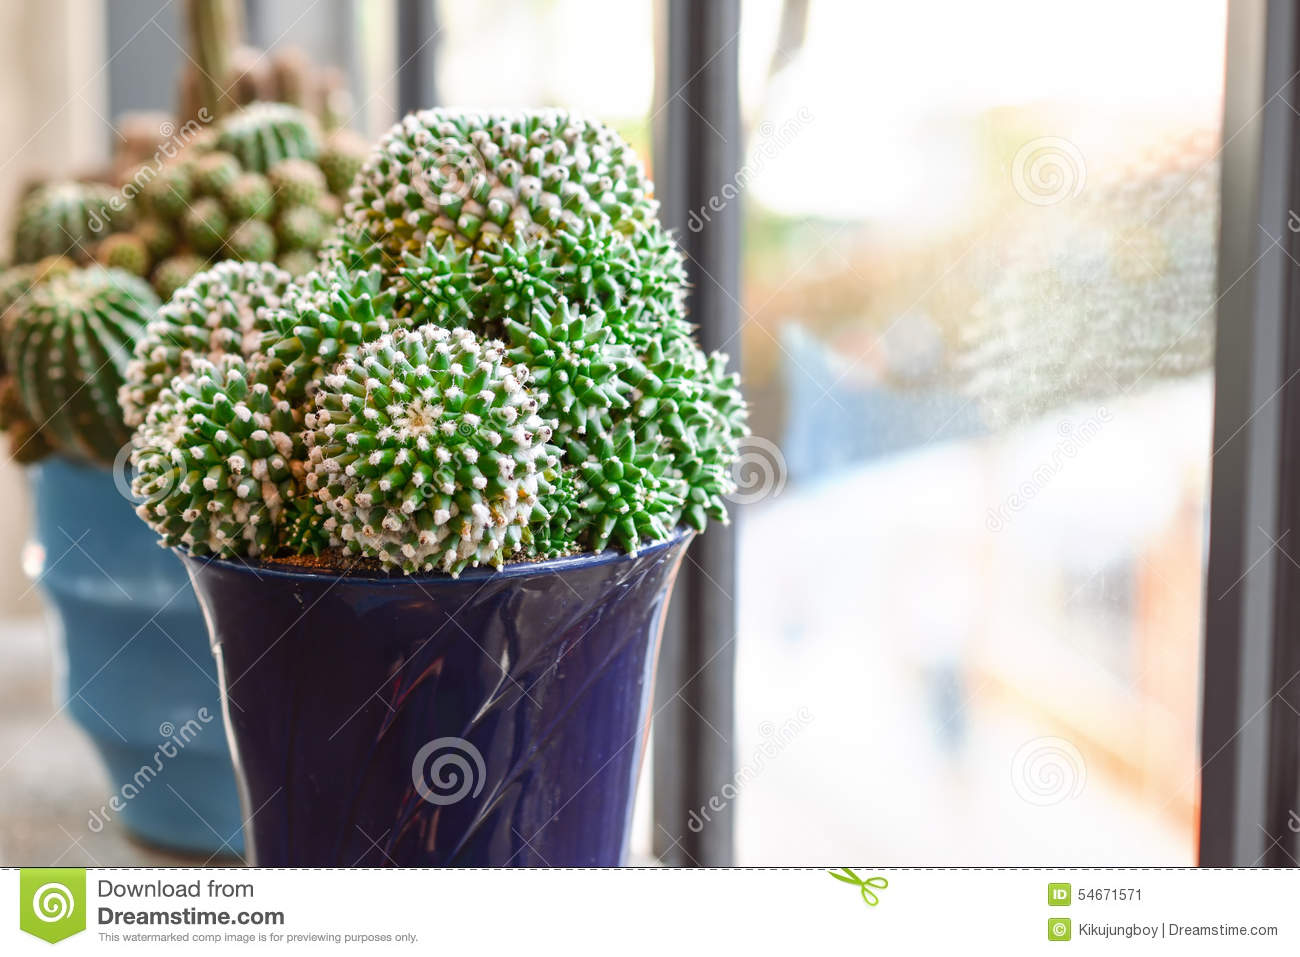 Un cactus vert dans le pot jardinage d 39 int rieur photo for Jardinage d interieur